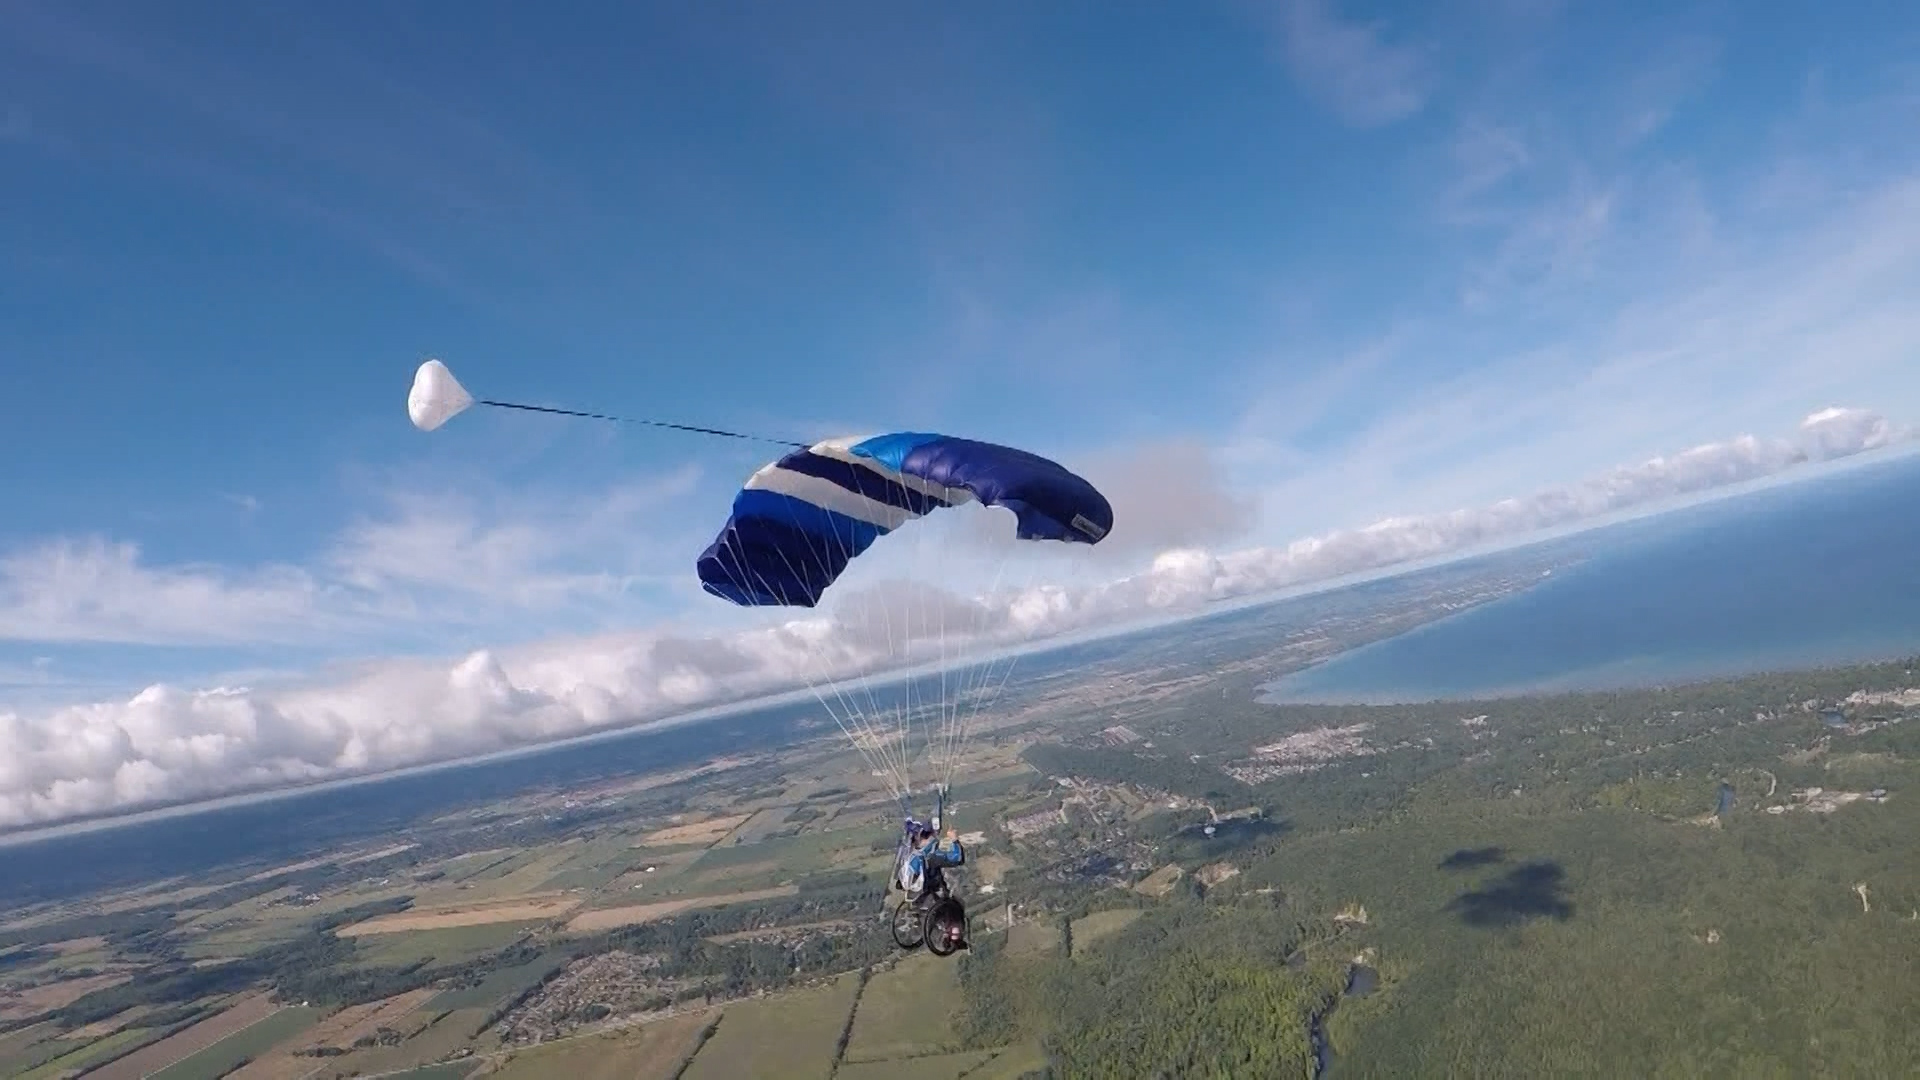 Paralympian jumps from plane while in wheelchair during skydiving championships in Wasaga Beach